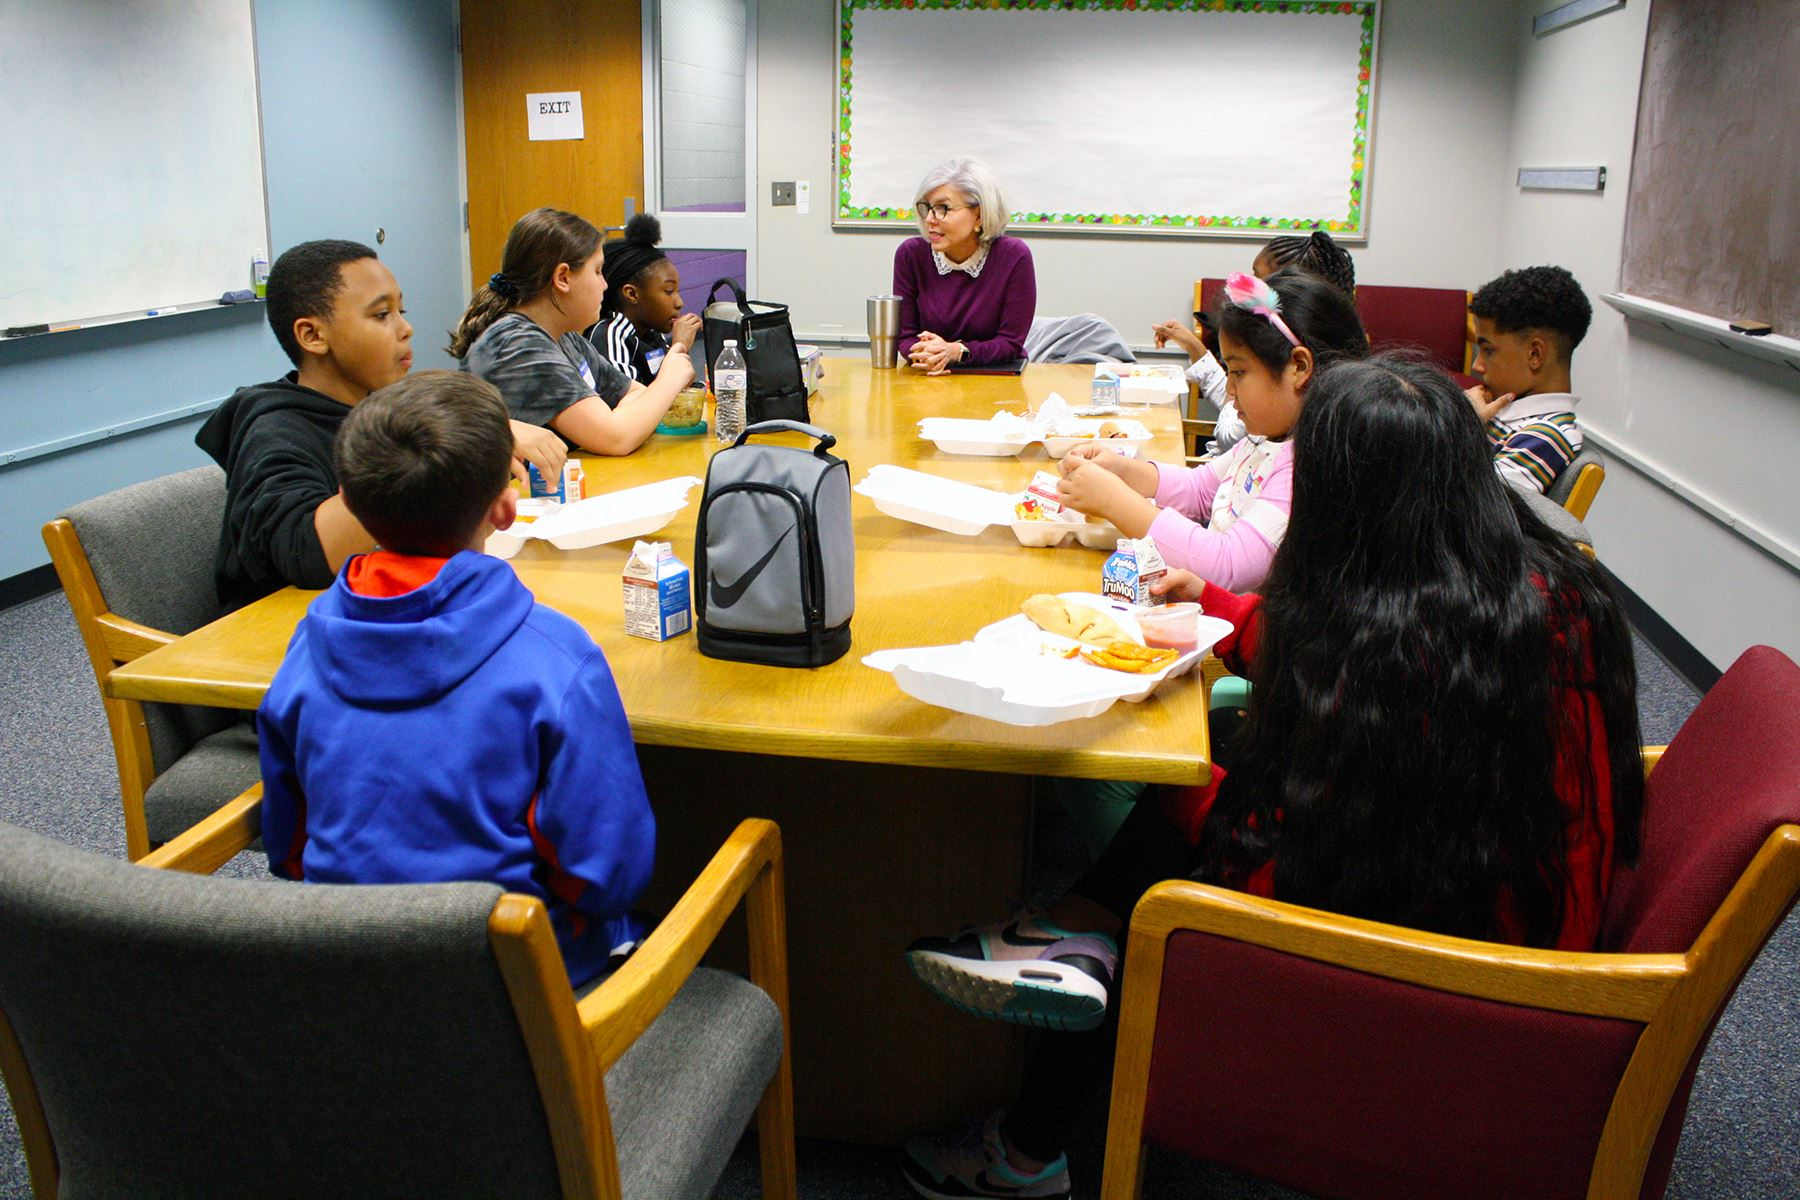 Eight elementary school students seated at a table eating lunch and talking with an adult female